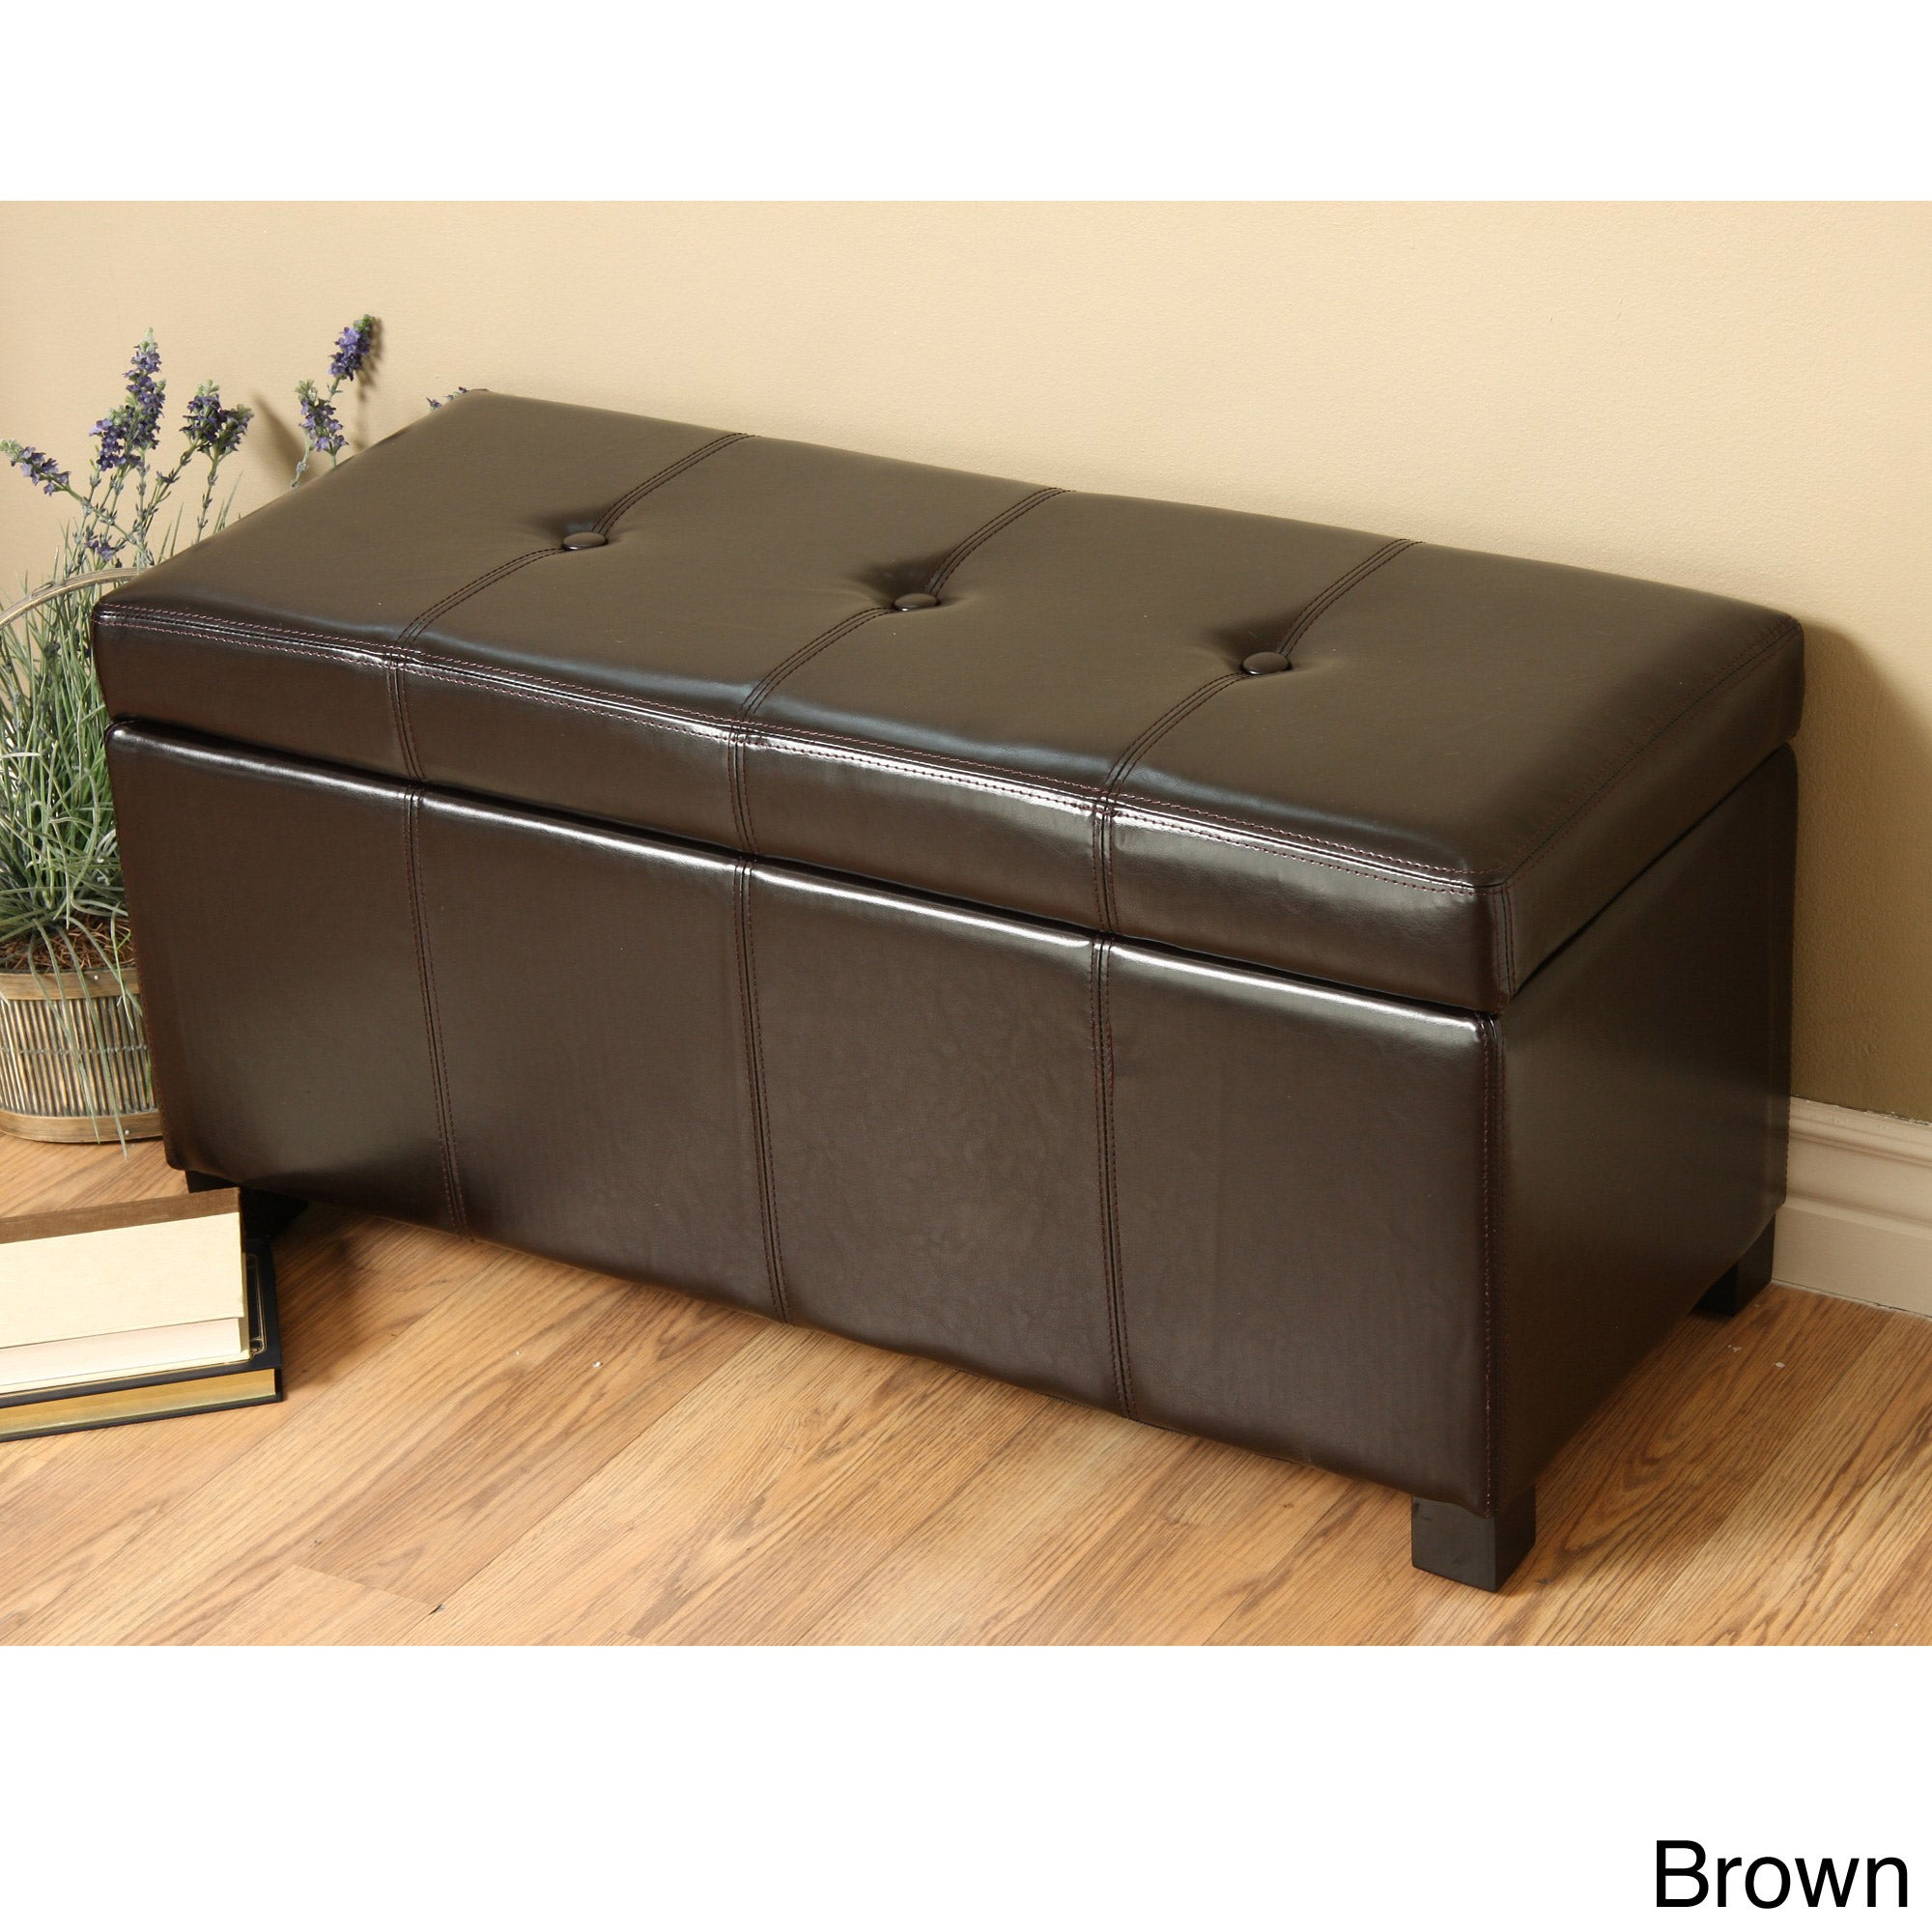 New modern faux leather storage bench living room accent furniture great home ebay Storage benches